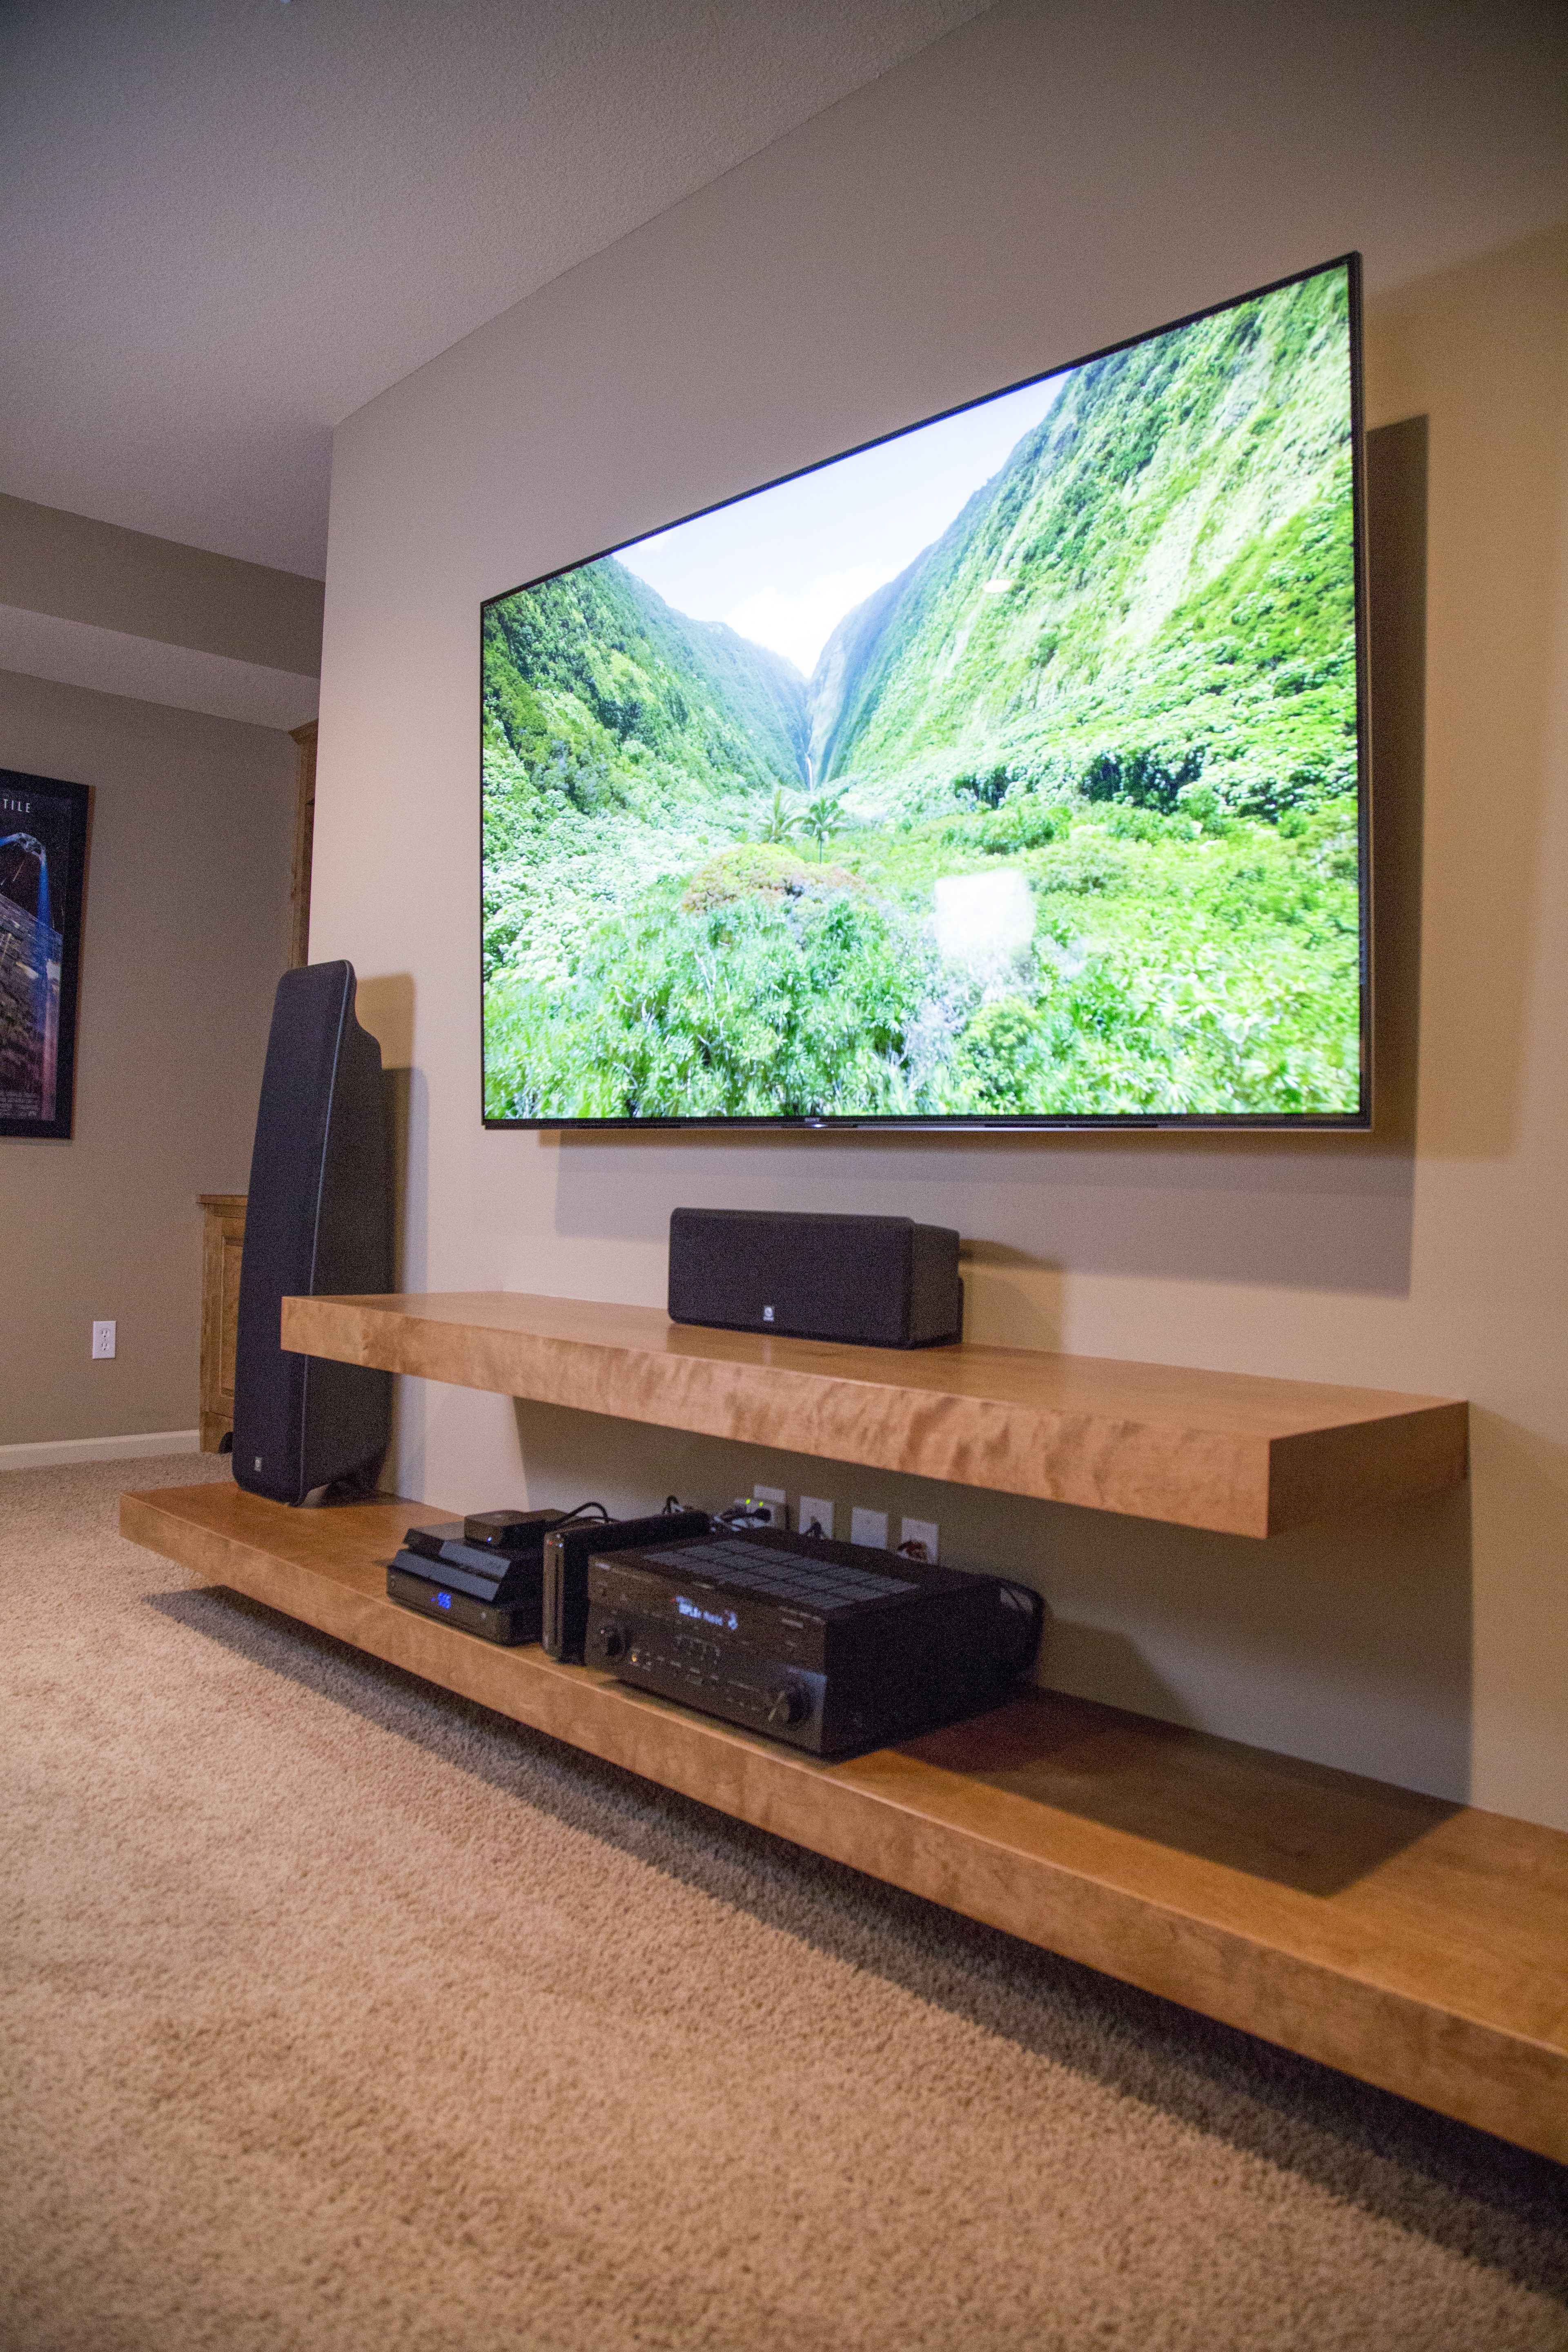 small living room entertainment center ideas pretty 20 best diy design for more below pallet built in plans floating decor rustic